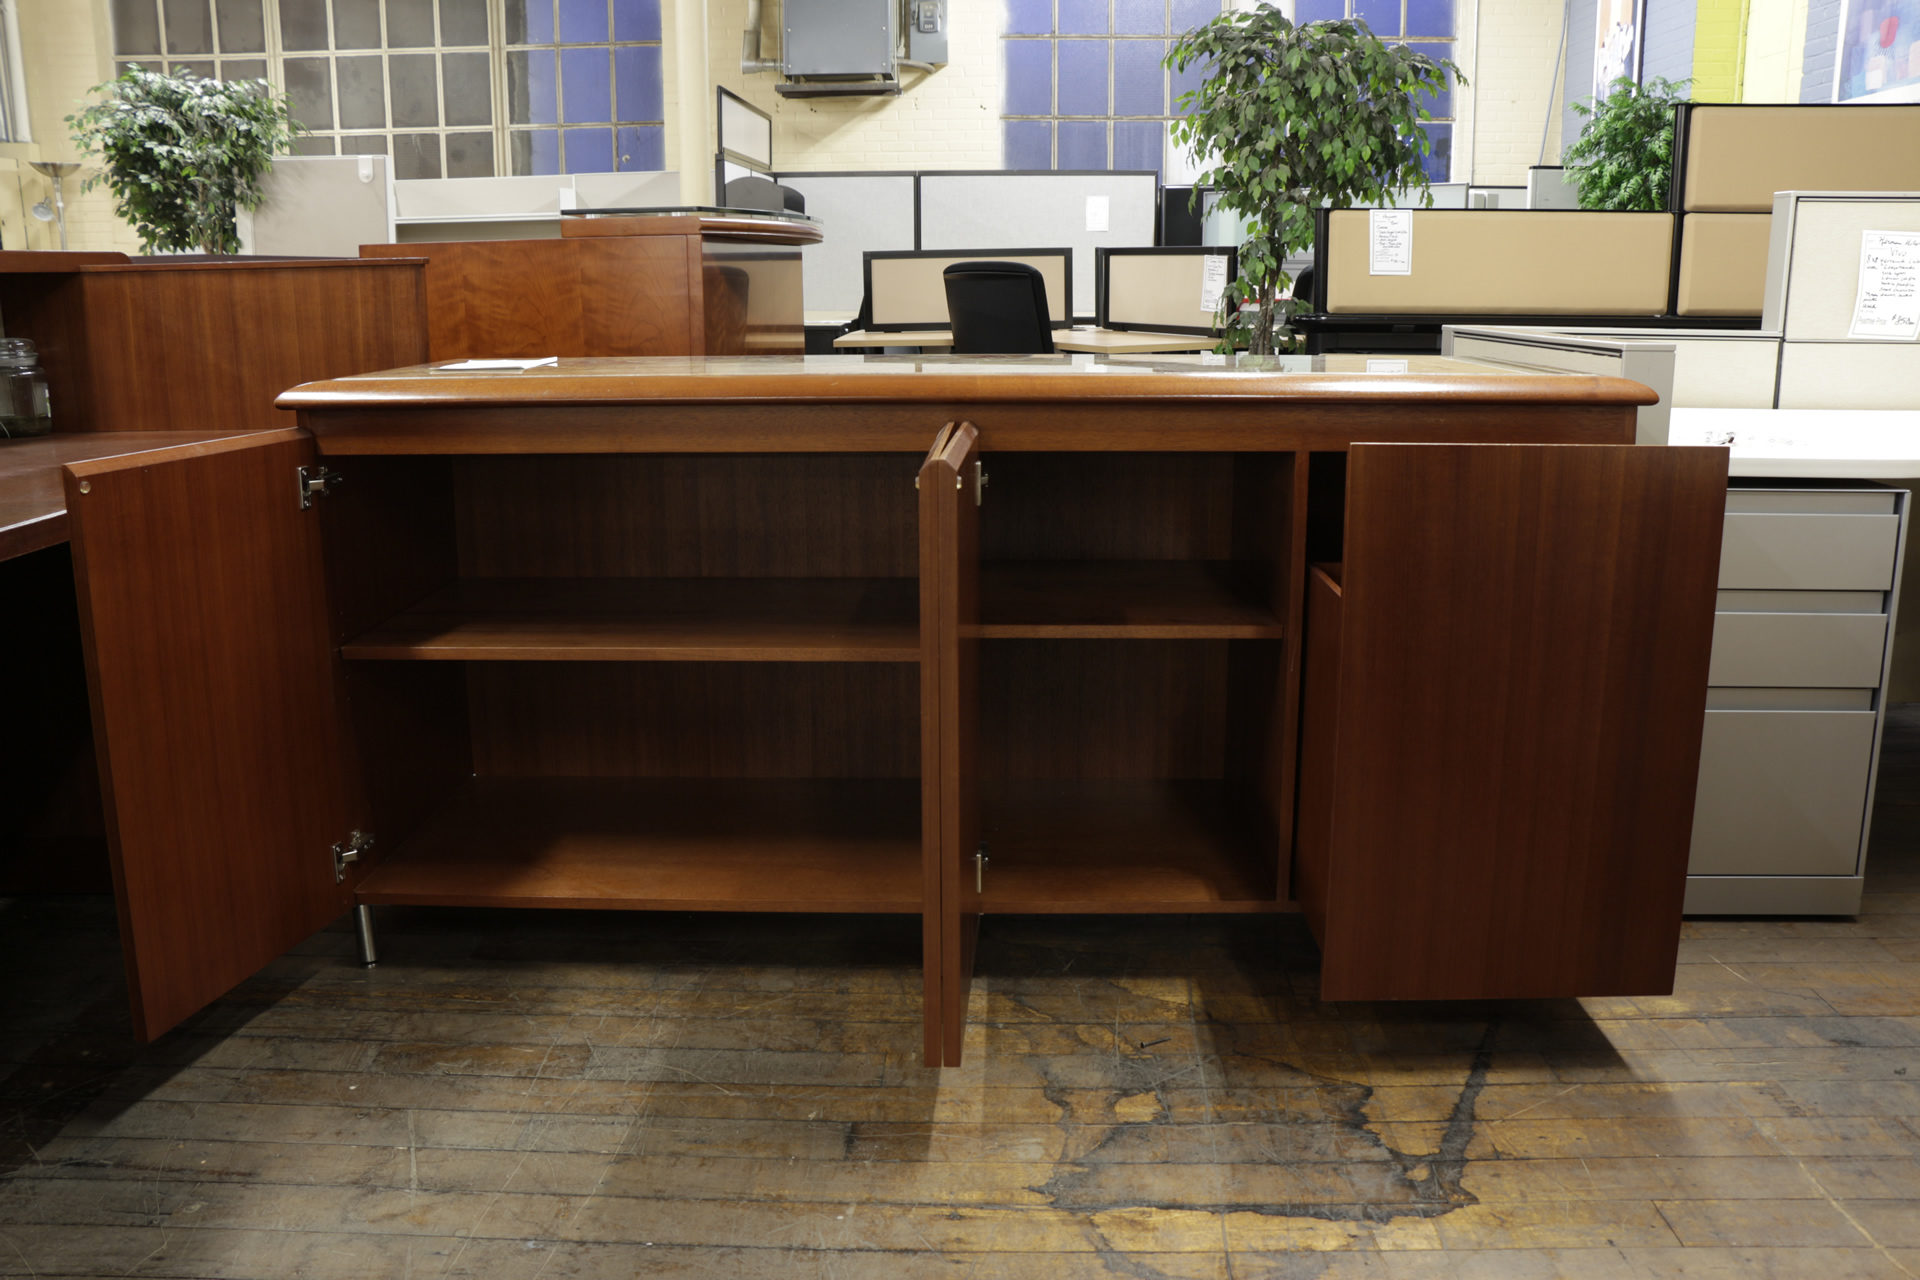 peartreeofficefurniture_peartreeofficefurniture_mg_2607.jpg